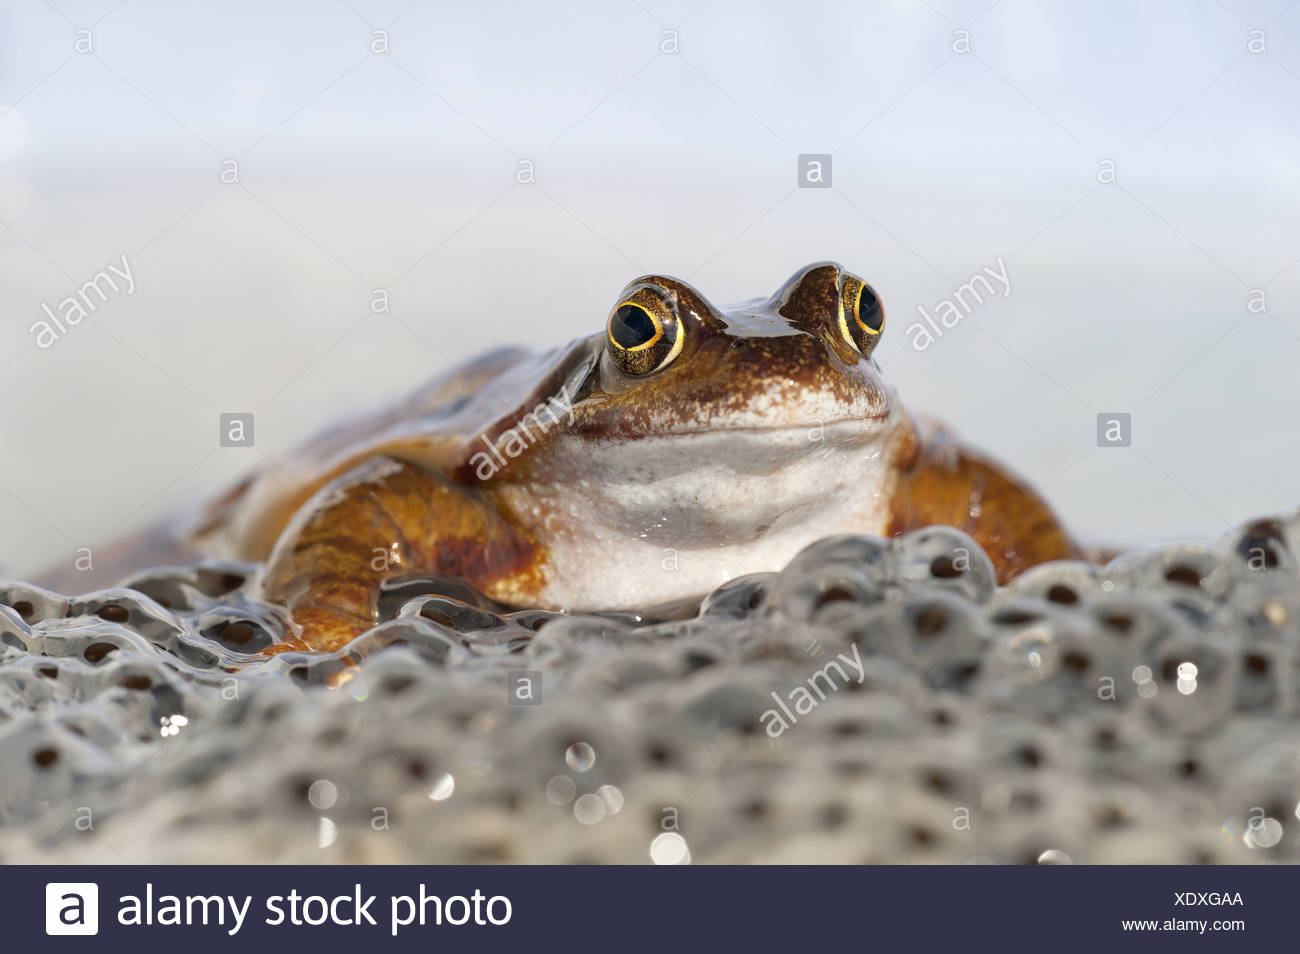 Common frog sitting on spawn, Rana temporaria, Germany, Europe - Stock Image